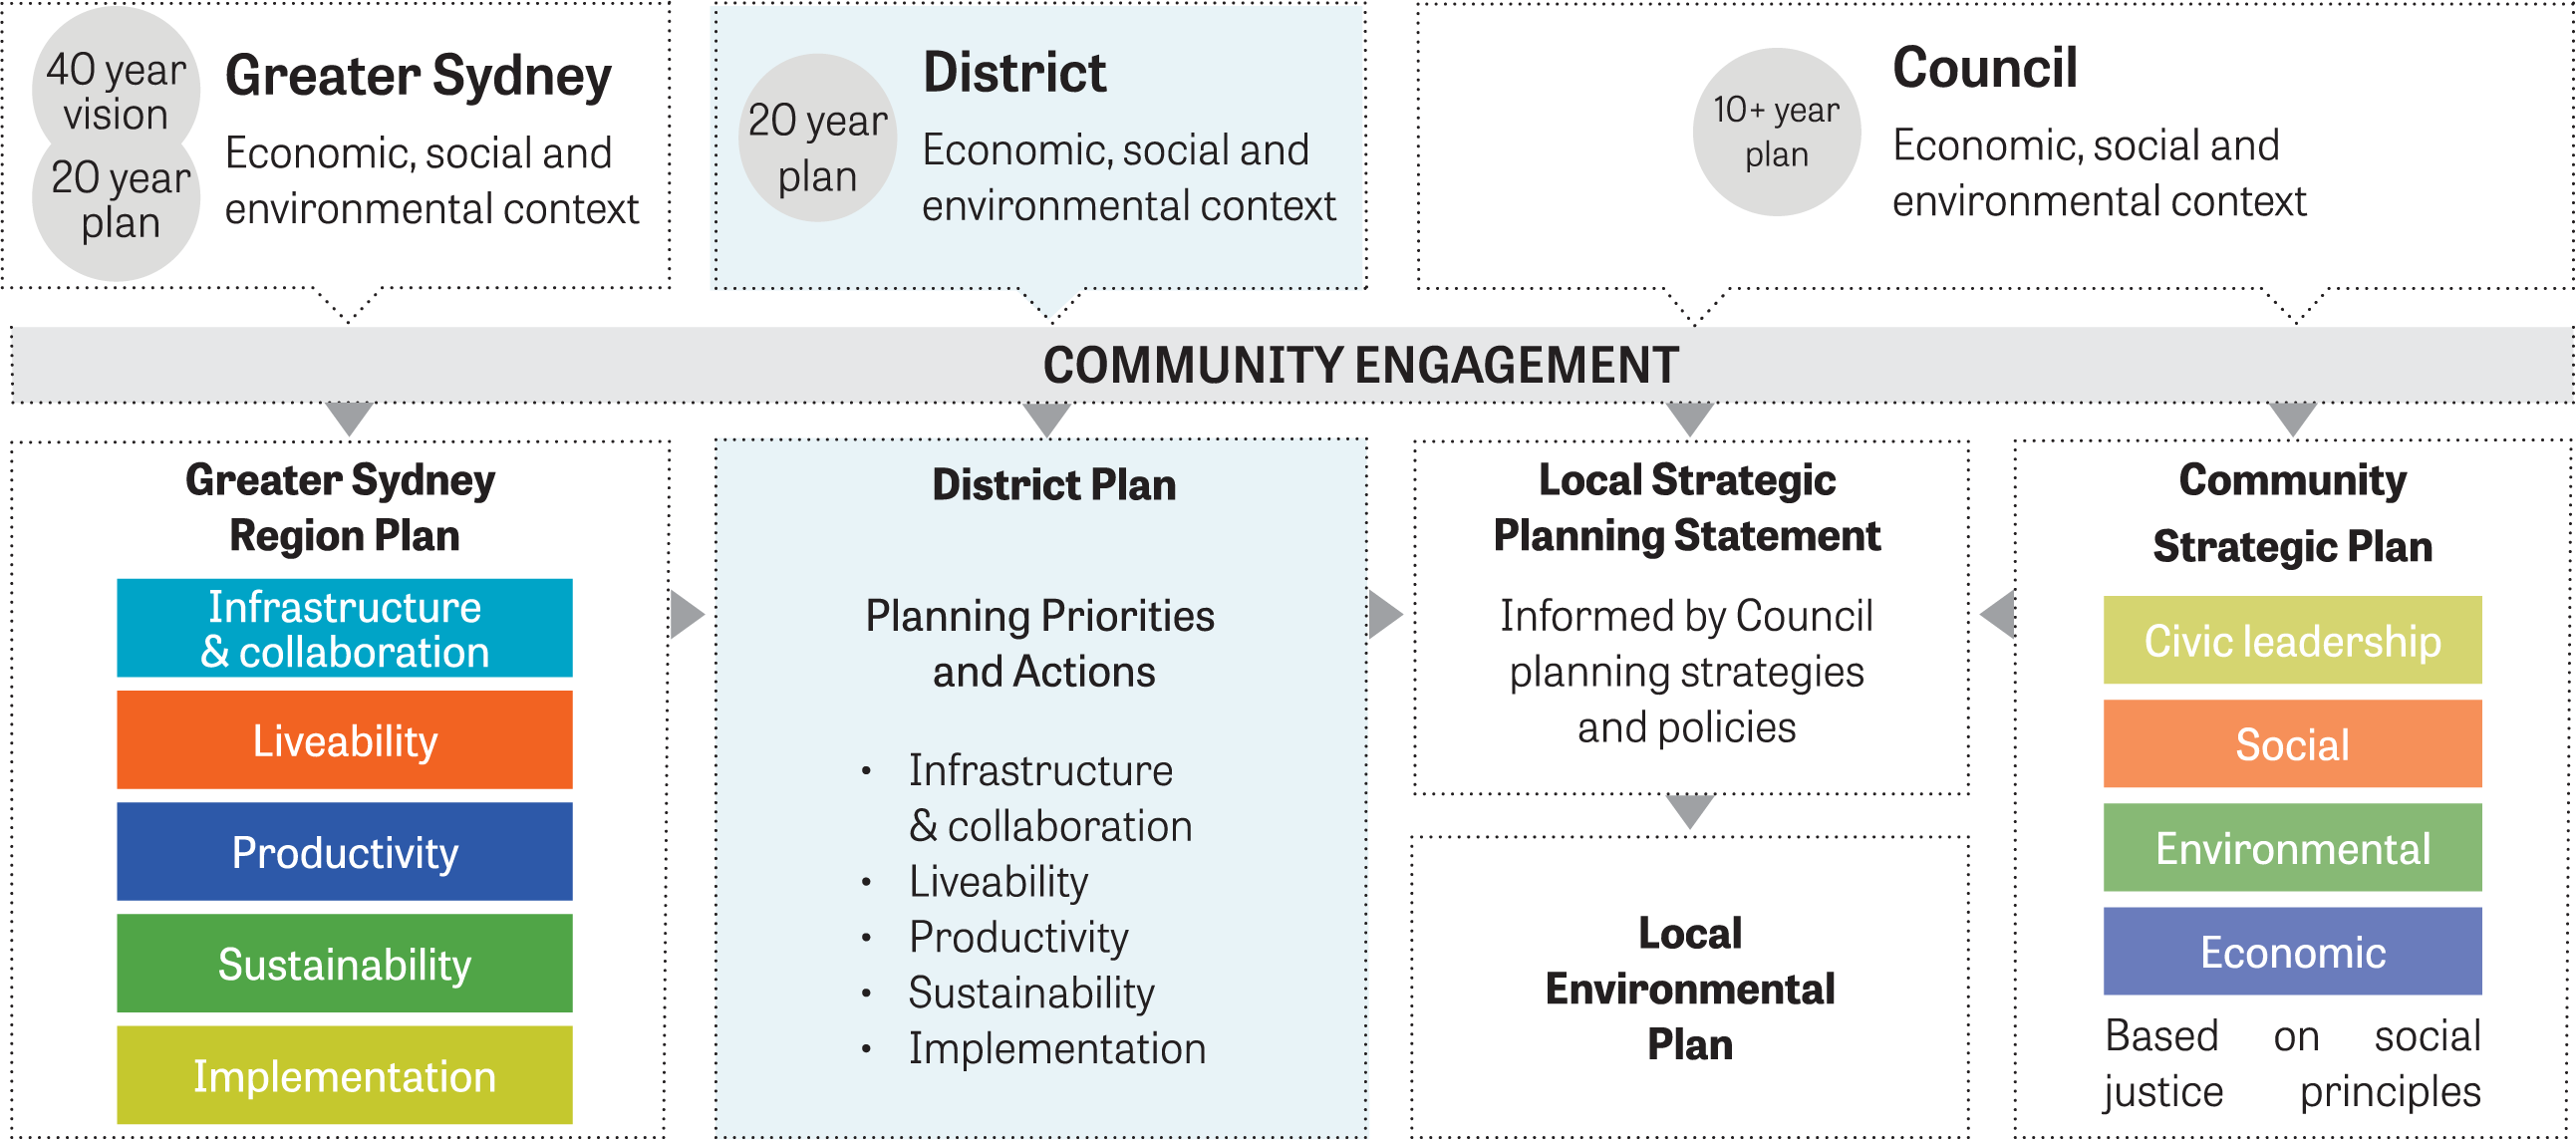 Figure 2. Diagram showing Relationship between regional, district and local plans.